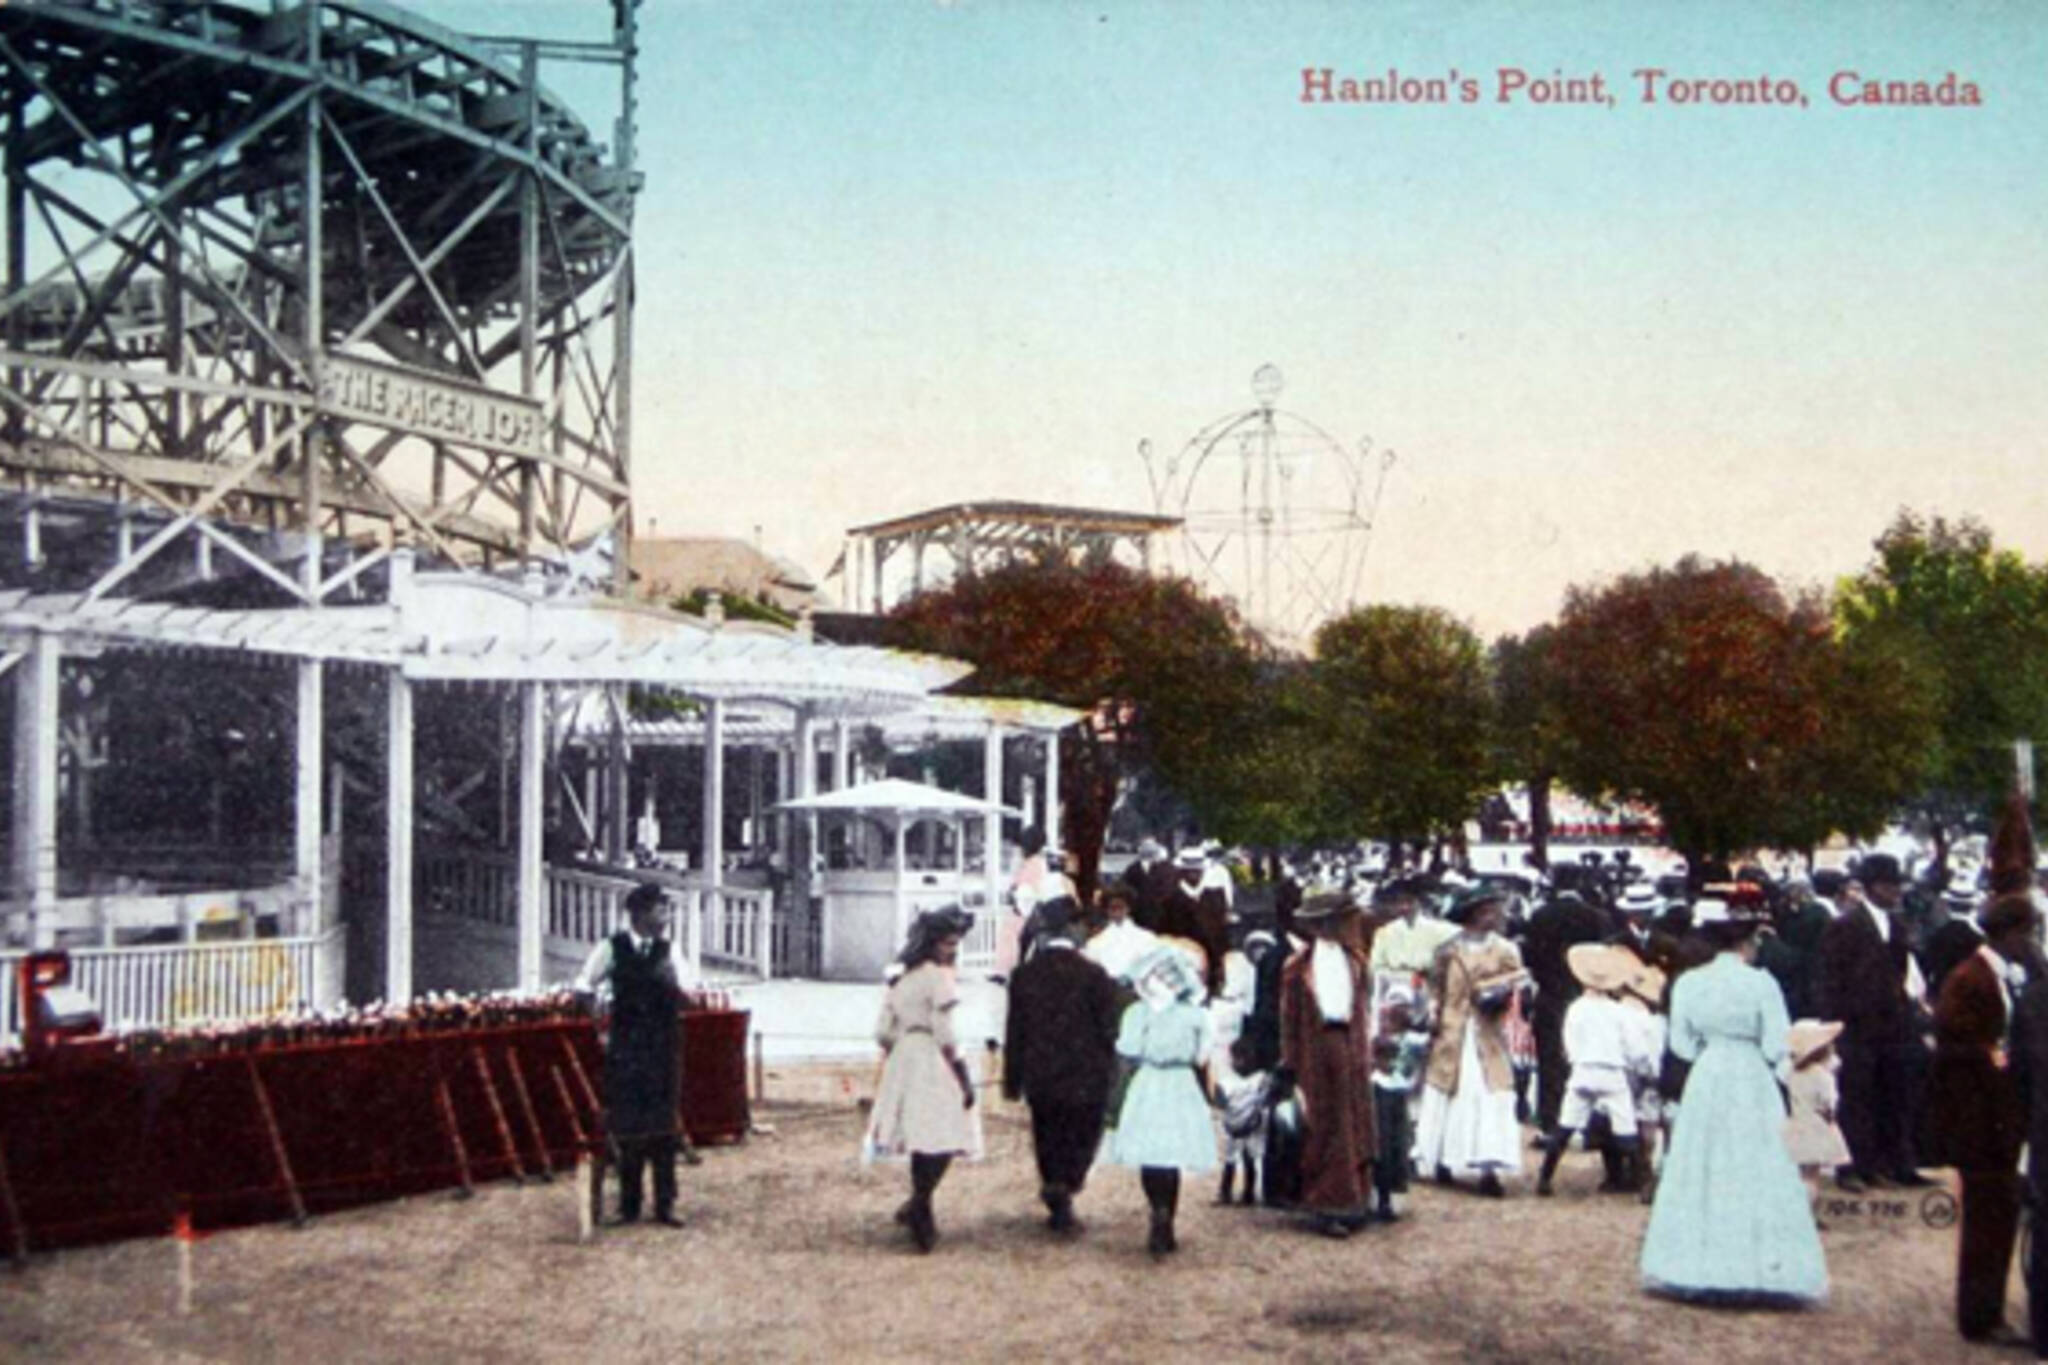 Toronto, Toronto Islands, Hanlan's Point Amusement Park